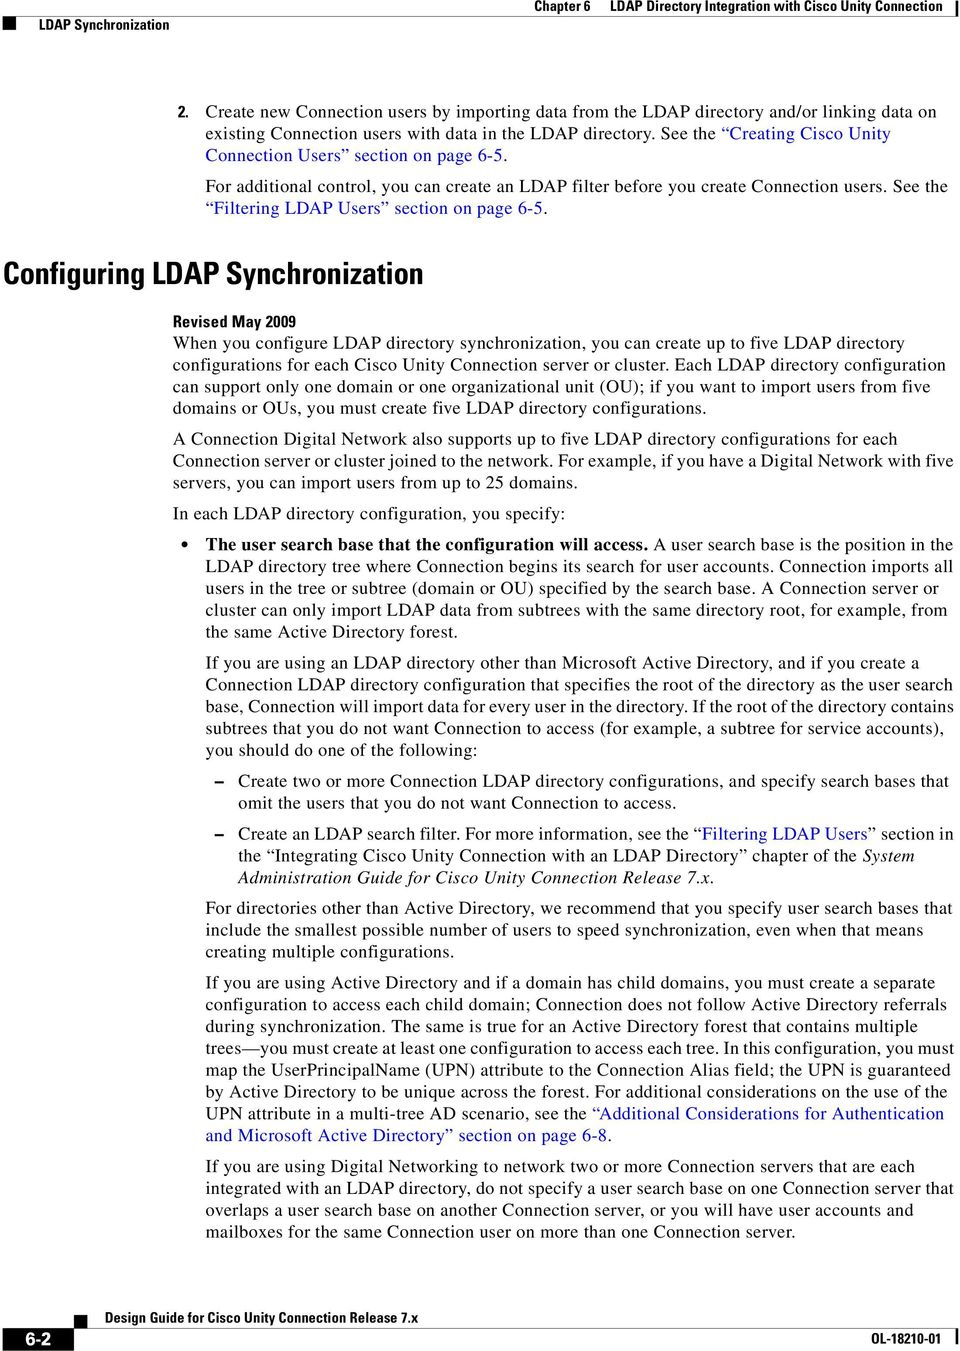 See the Filtering LDAP Users section on page 6-5.